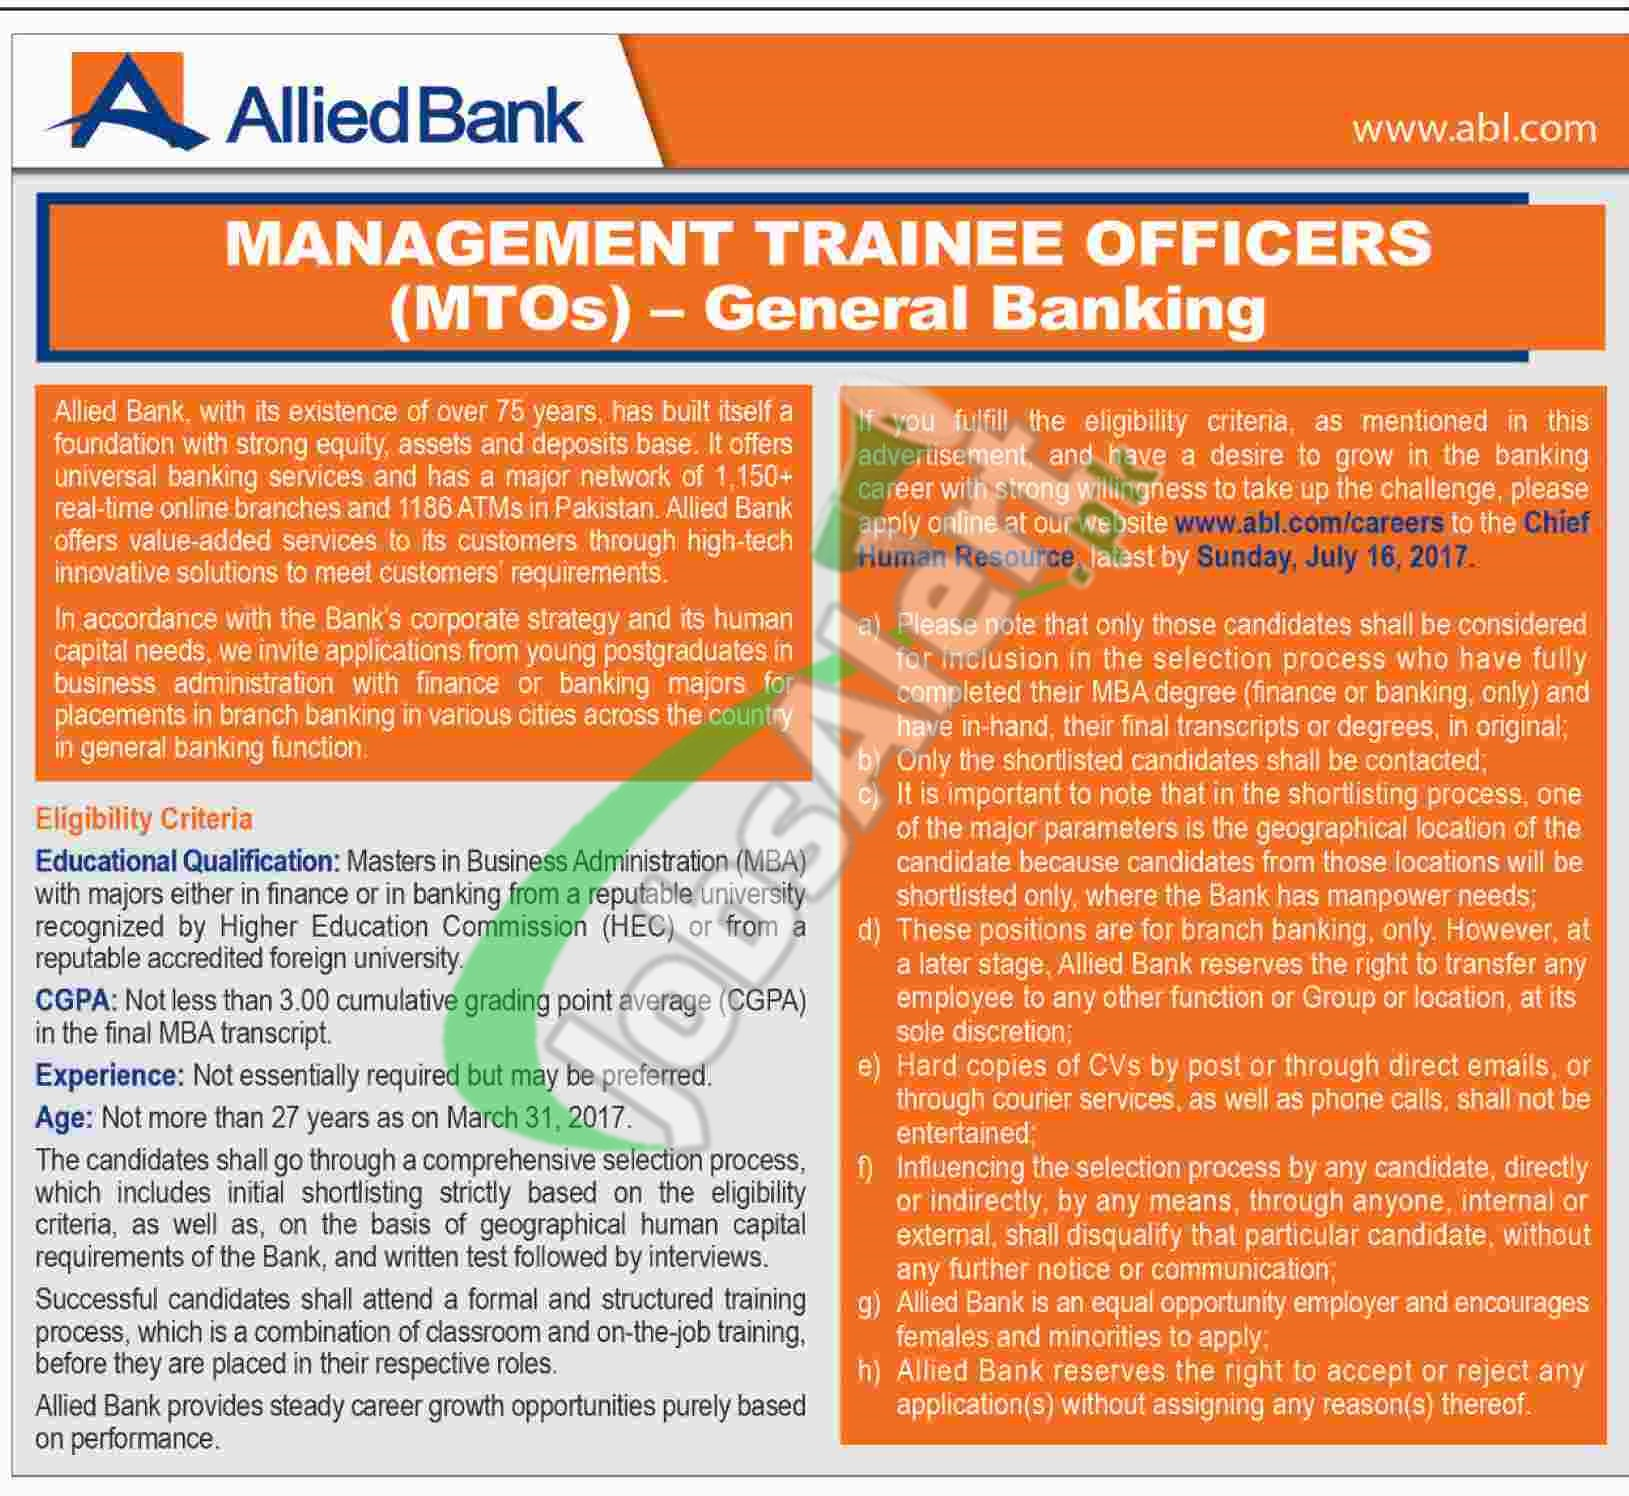 Allied Bank MTO 2017